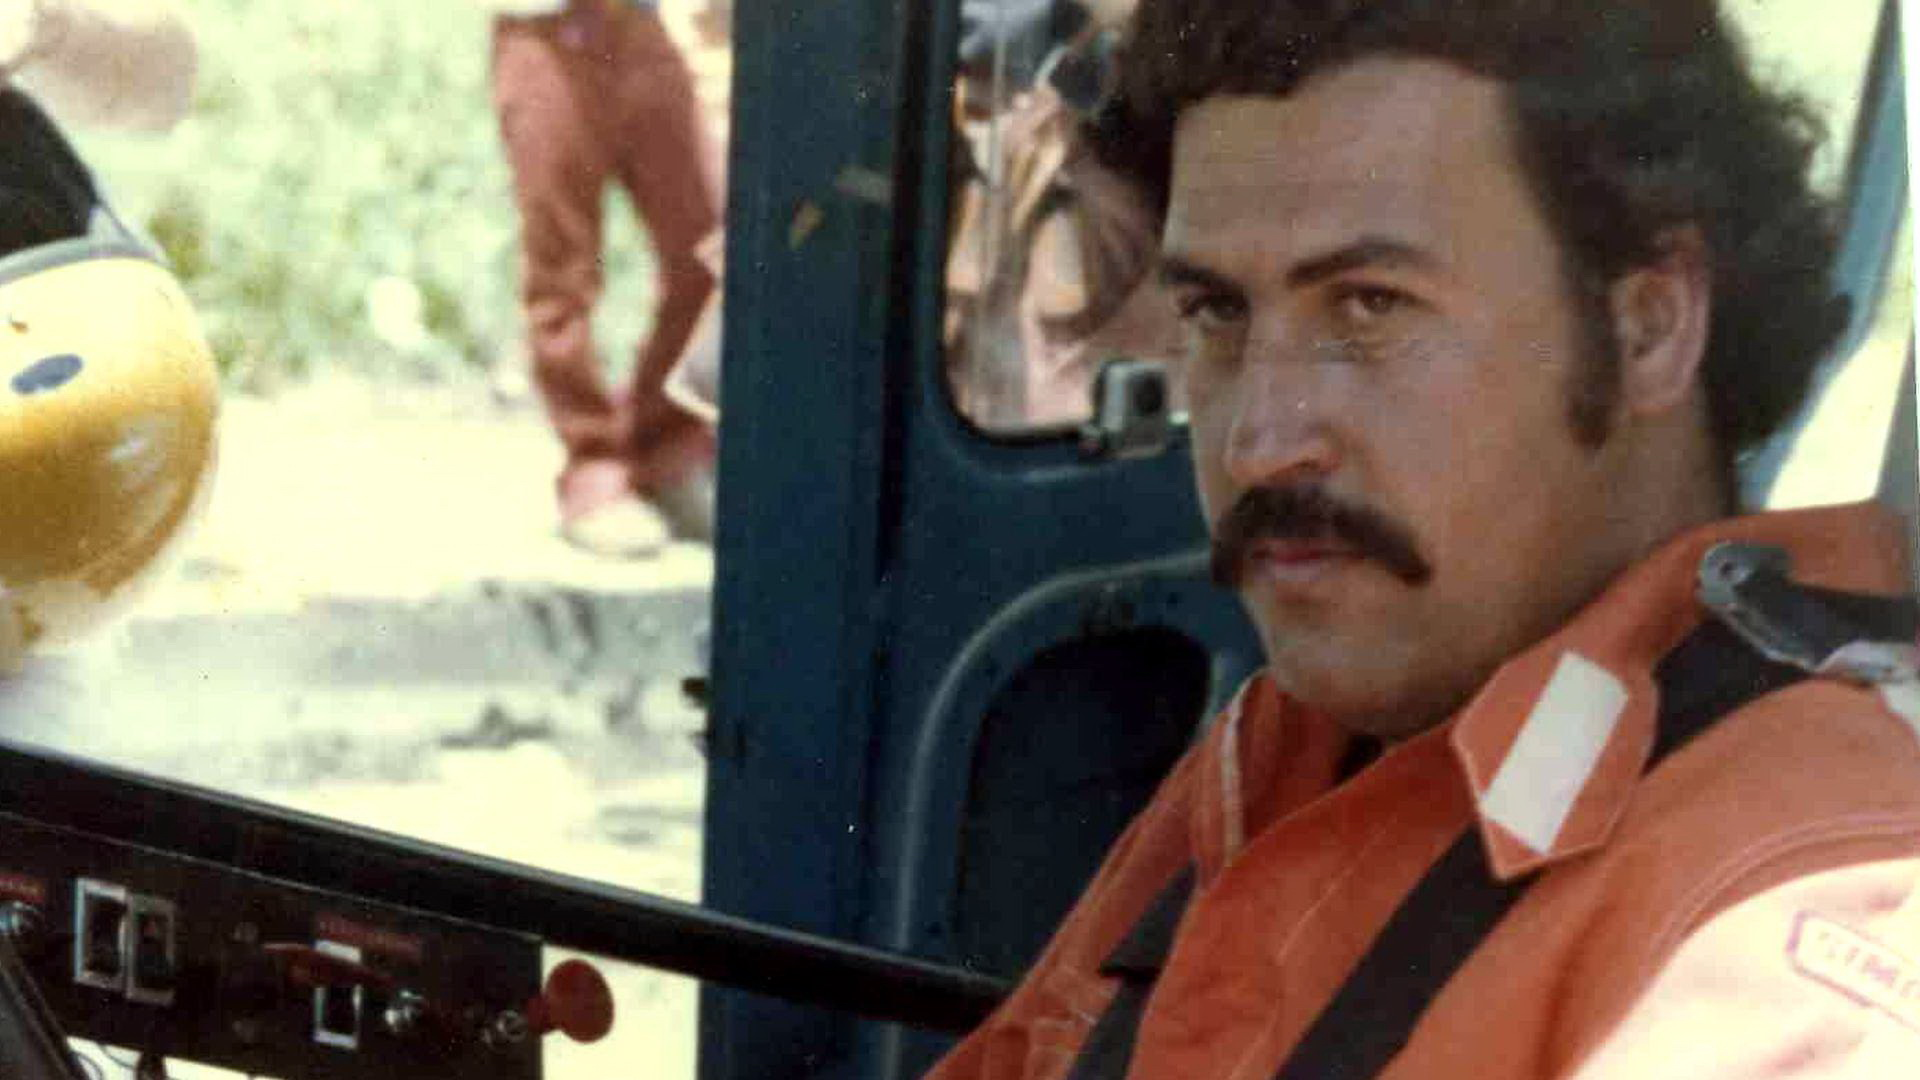 Pablo-Escobar Image Source: Wlth